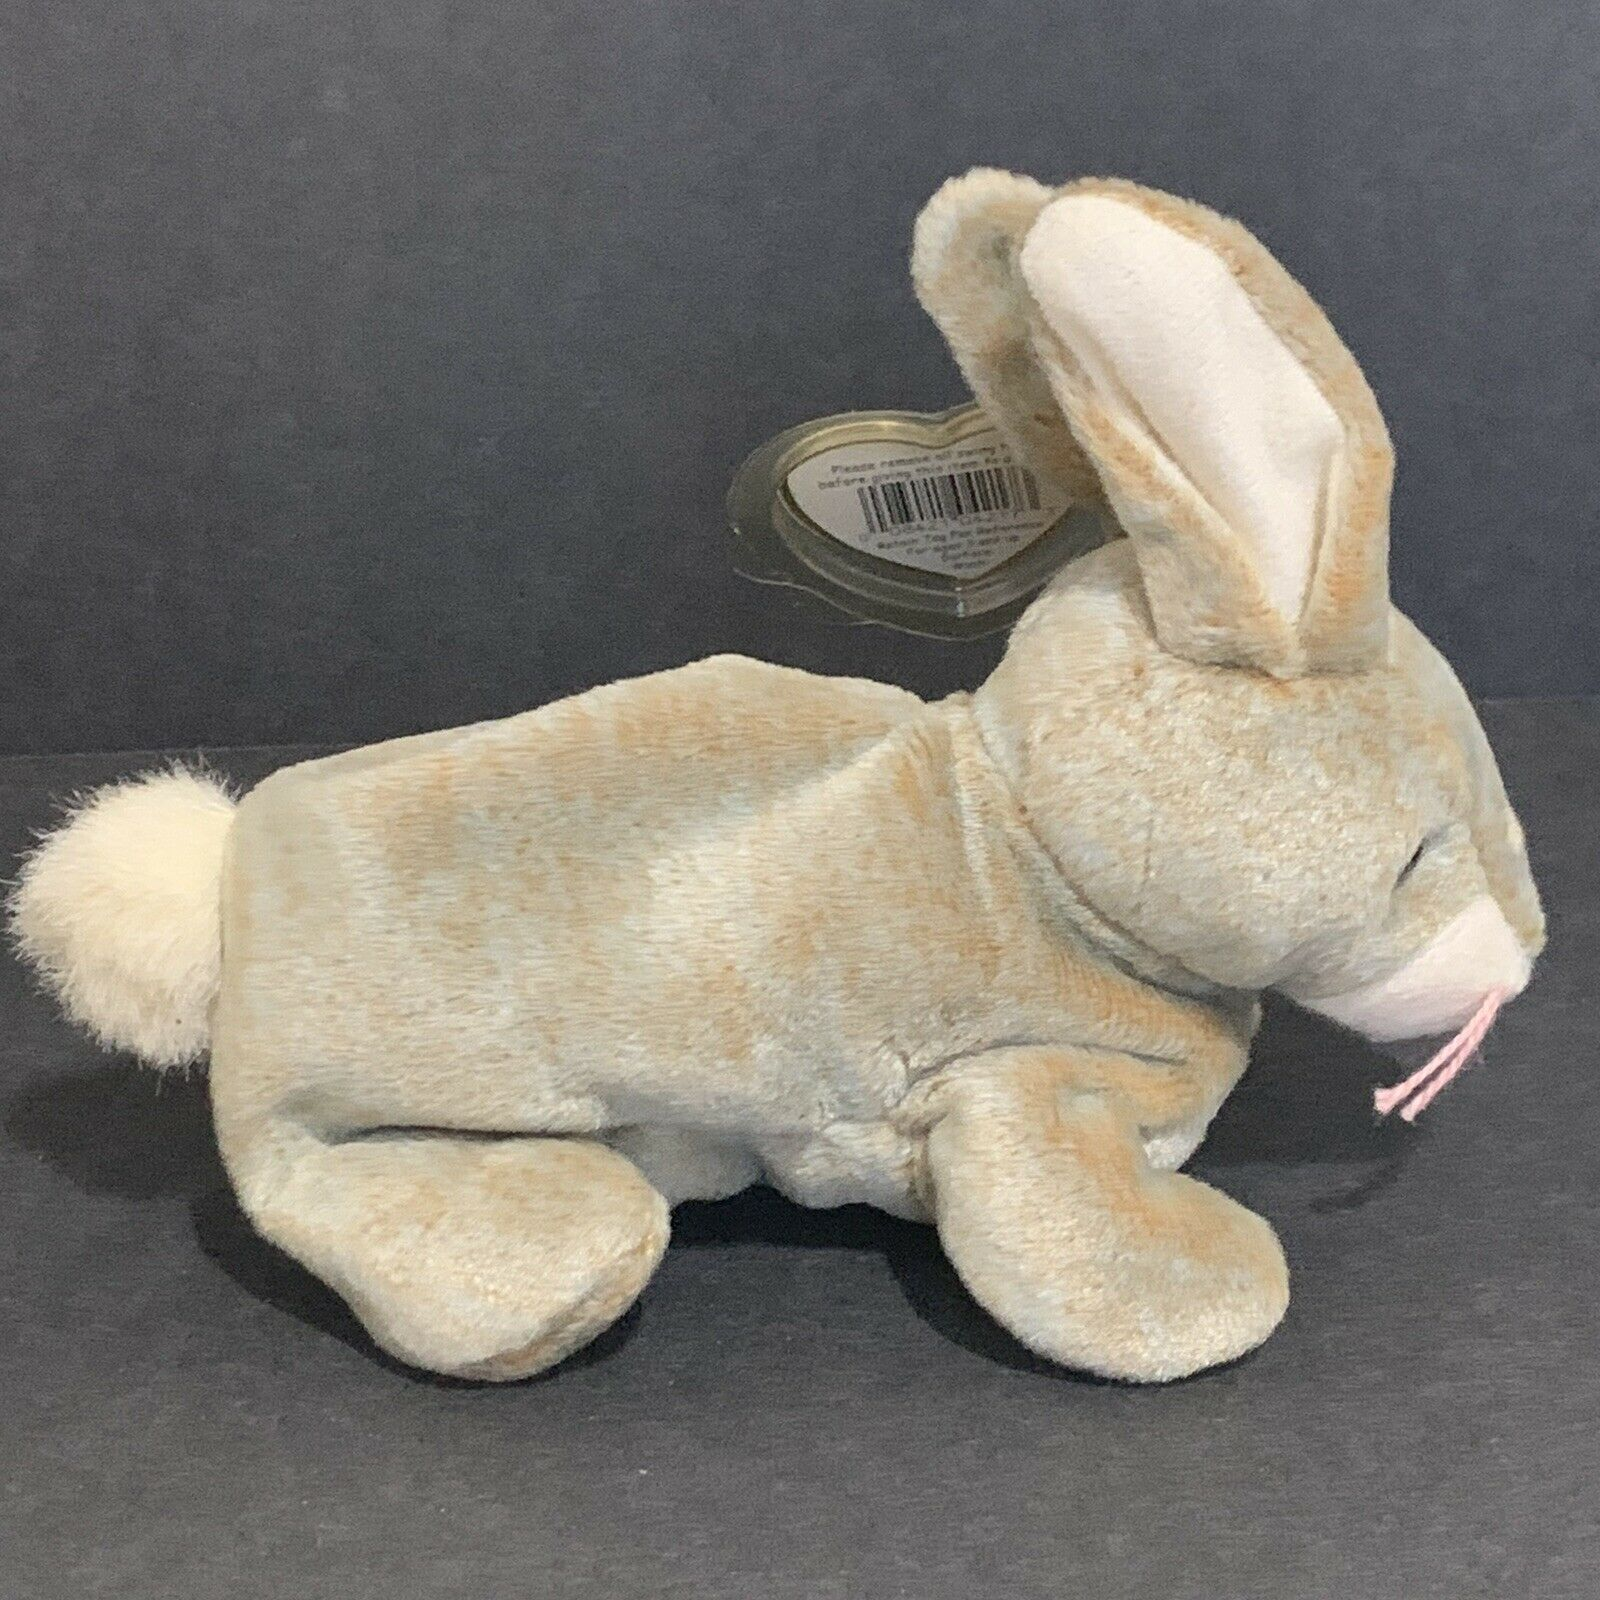 Nibbly The Rabbit Ty Beanie Baby RARE 4 Errors Tags and Tag Protector May 7 1998 for sale online